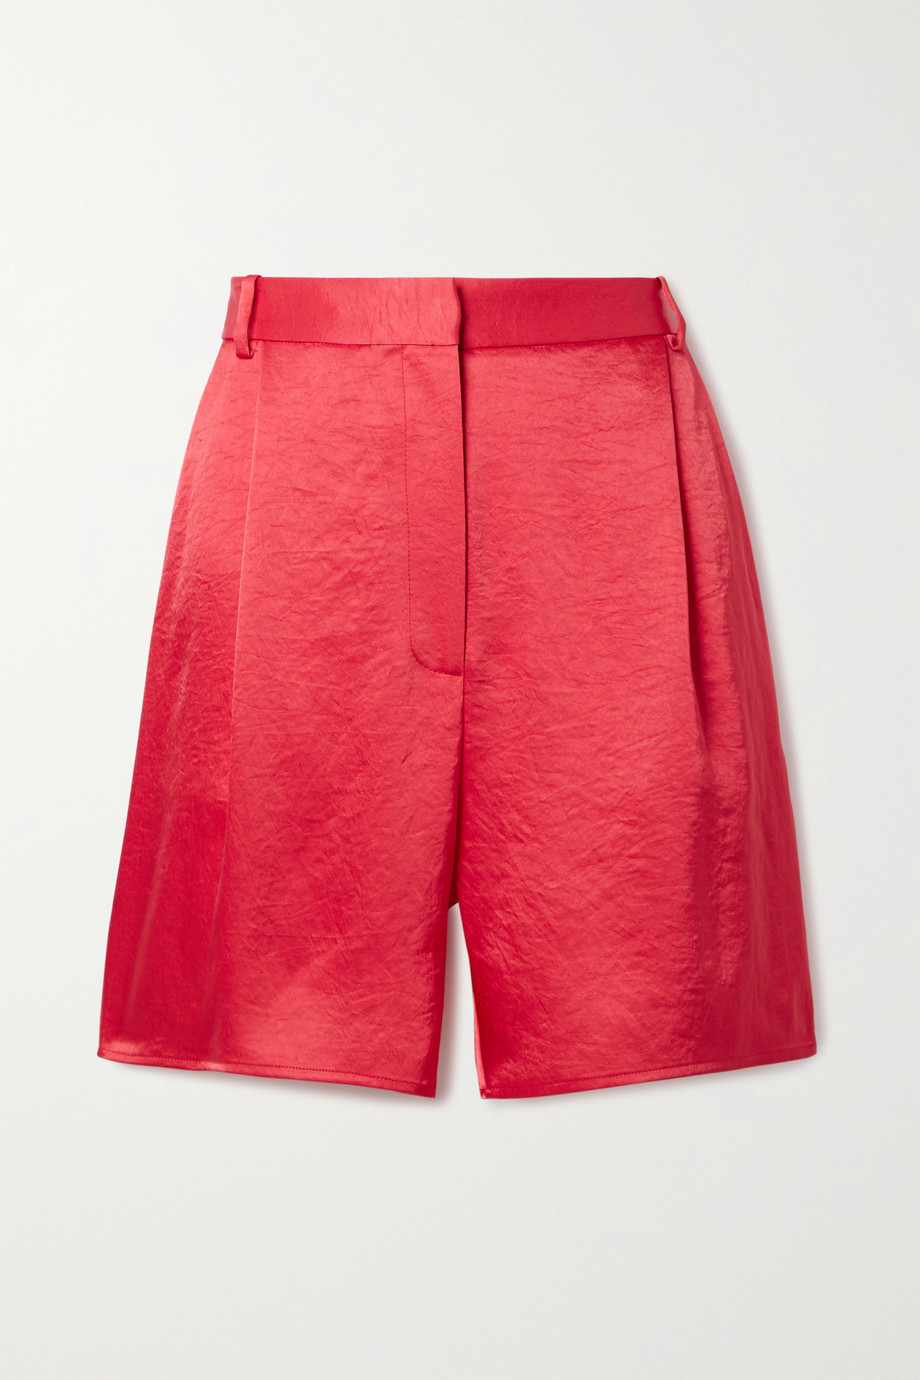 LAPOINTE Pleated crinkled-satin shorts